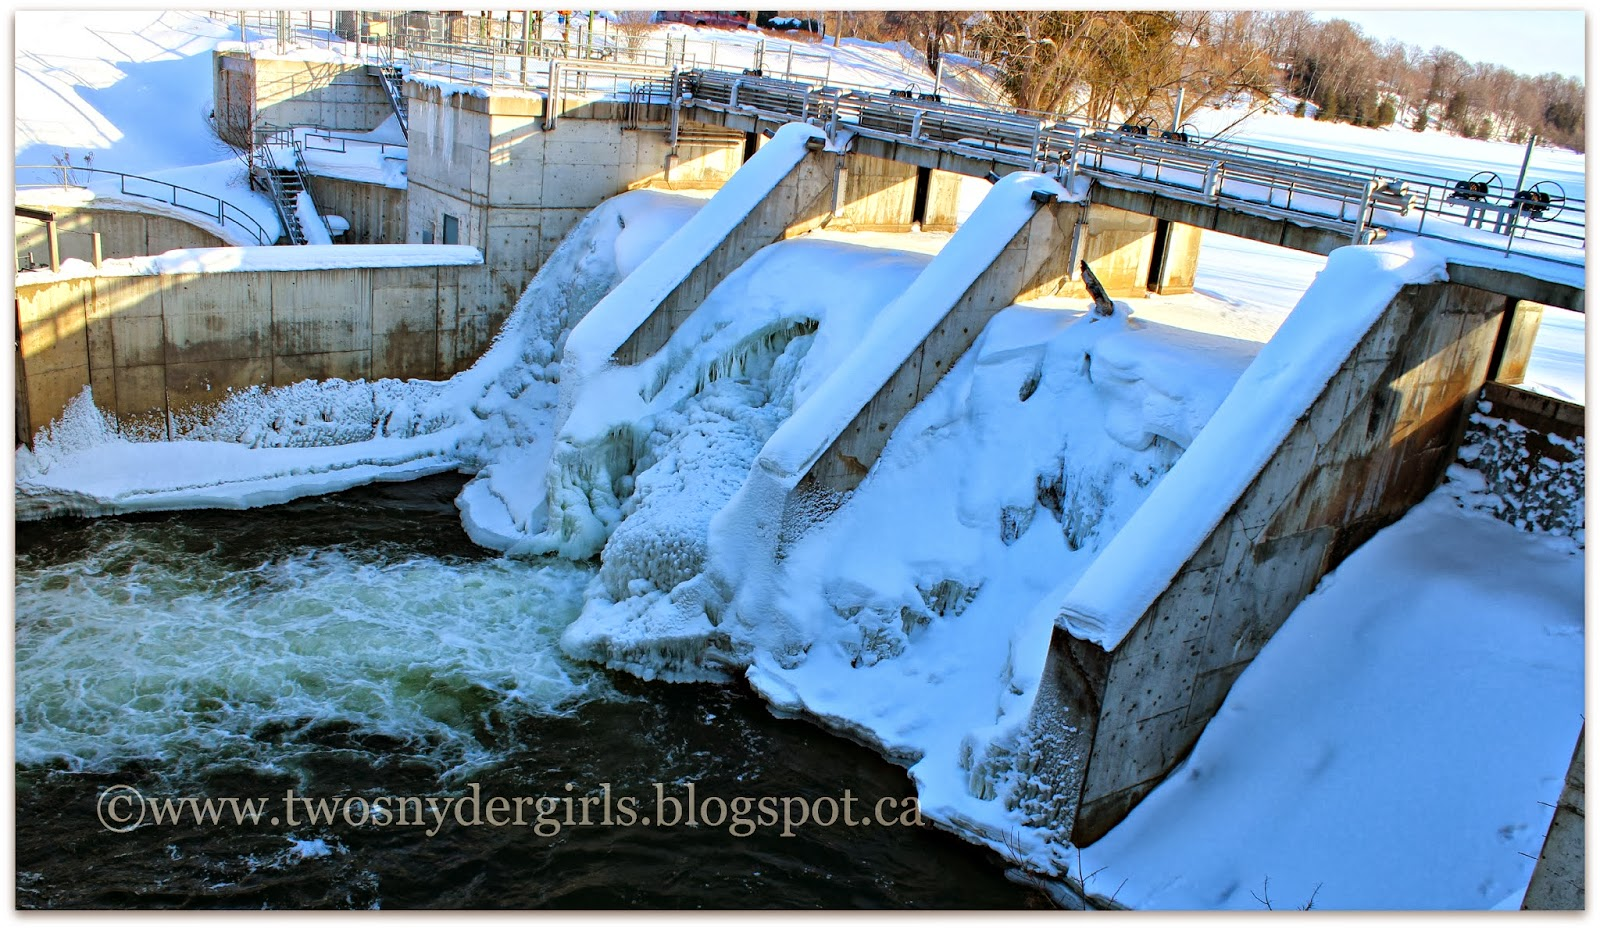 The fish ladder in Thornbury Ontario